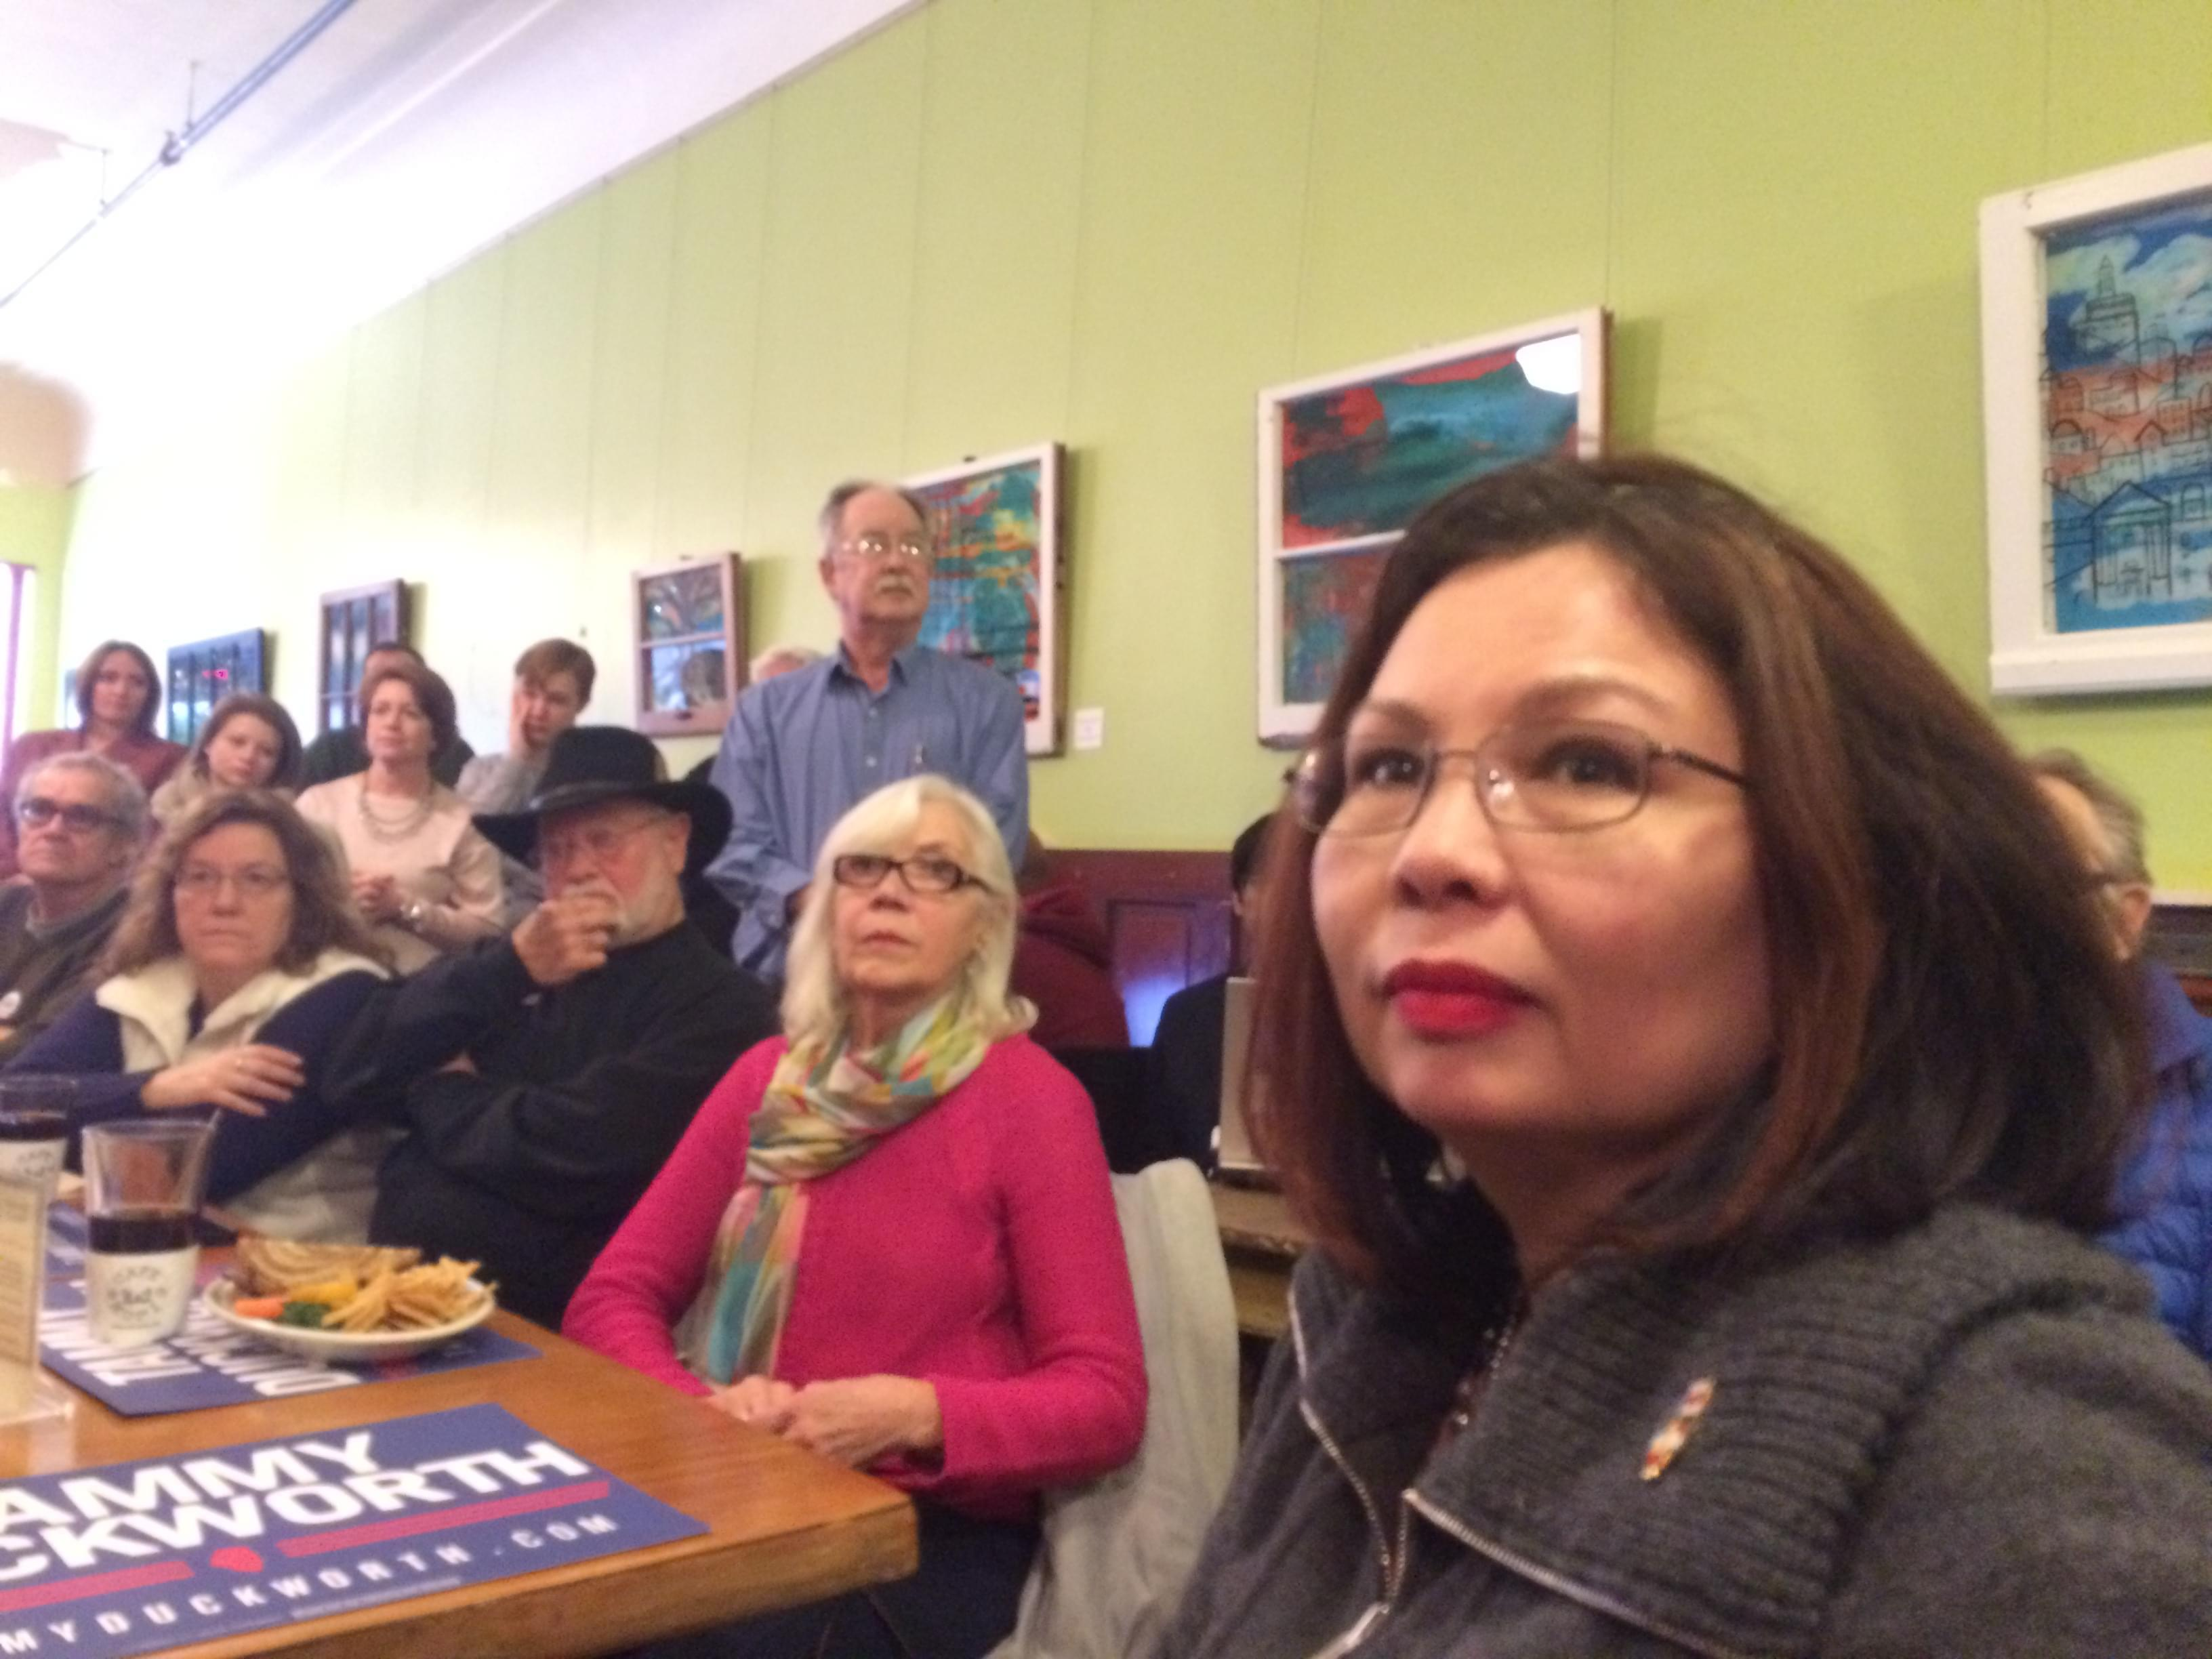 Congresswoman Tammy Duckworth (D-IL) campaigns for U.S. Senate at Cafe Kopi in Champaign on Tuesday.